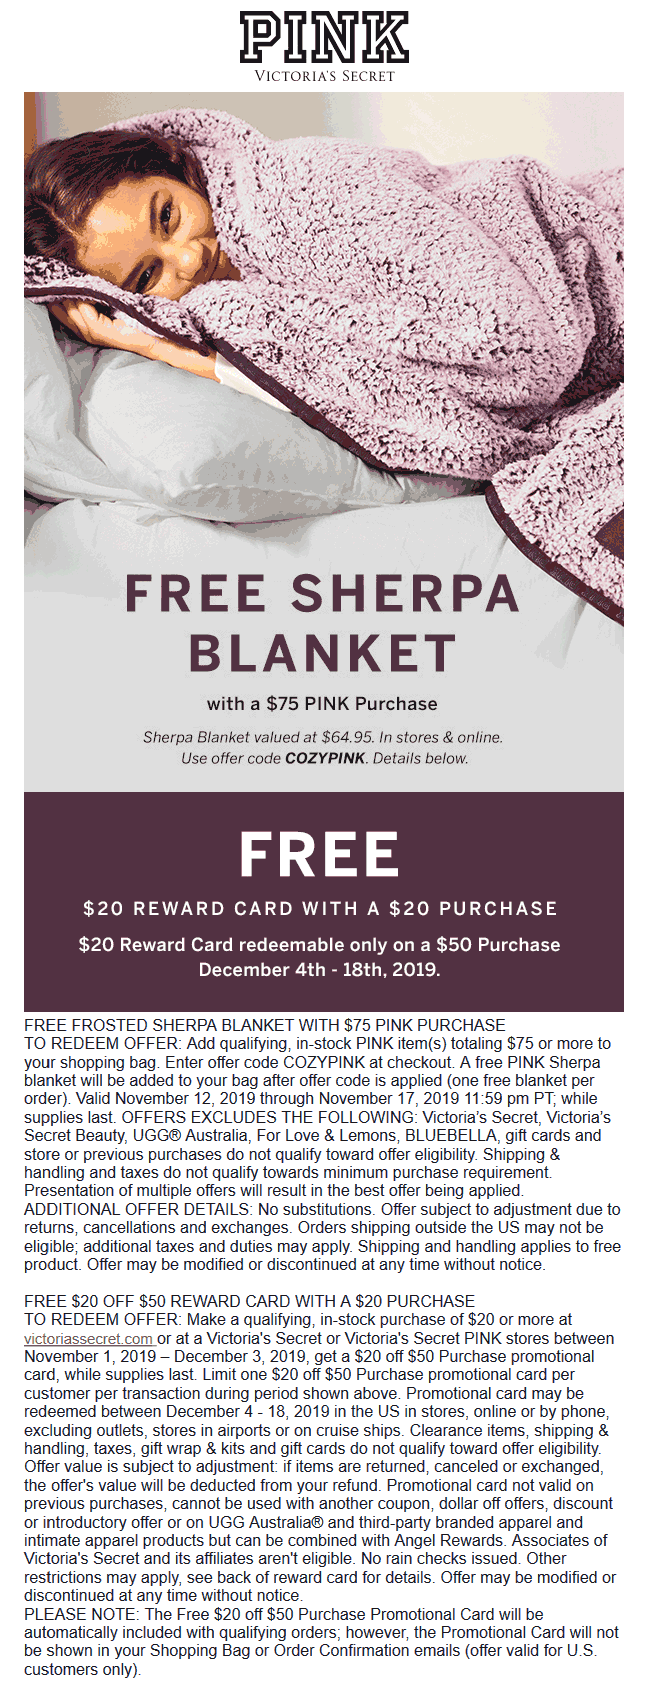 PINK Coupon January 2020 Free sherpa blanket with $75 spent at PINK, or online via promo code COZYPINK